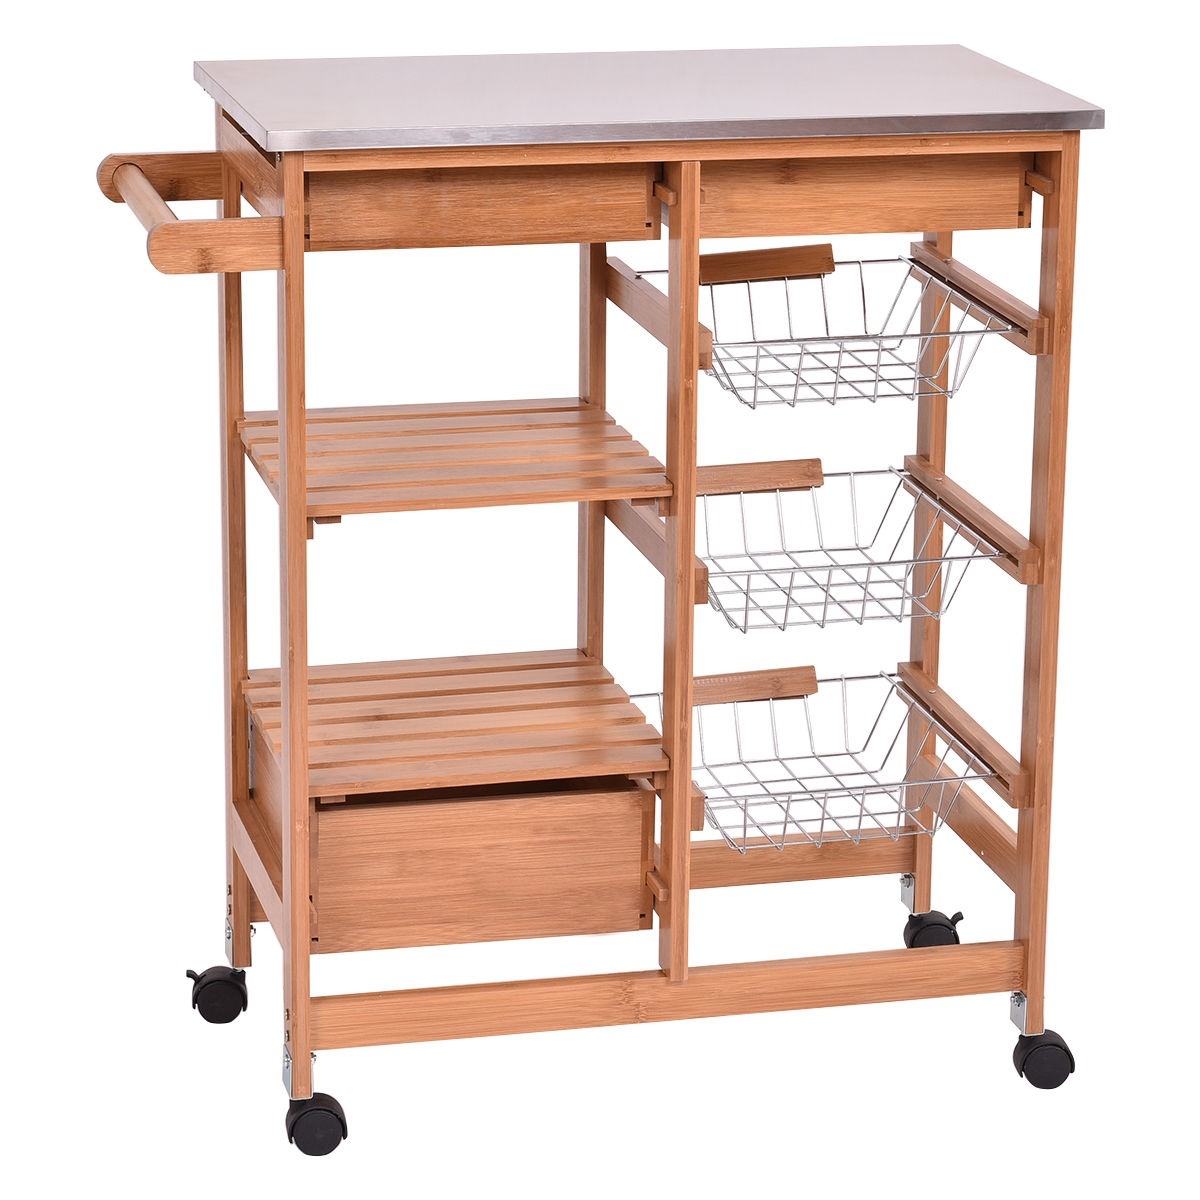 kitchen cart with drawers small lighting ideas gymax bamboo rolling island trolley storage shelf